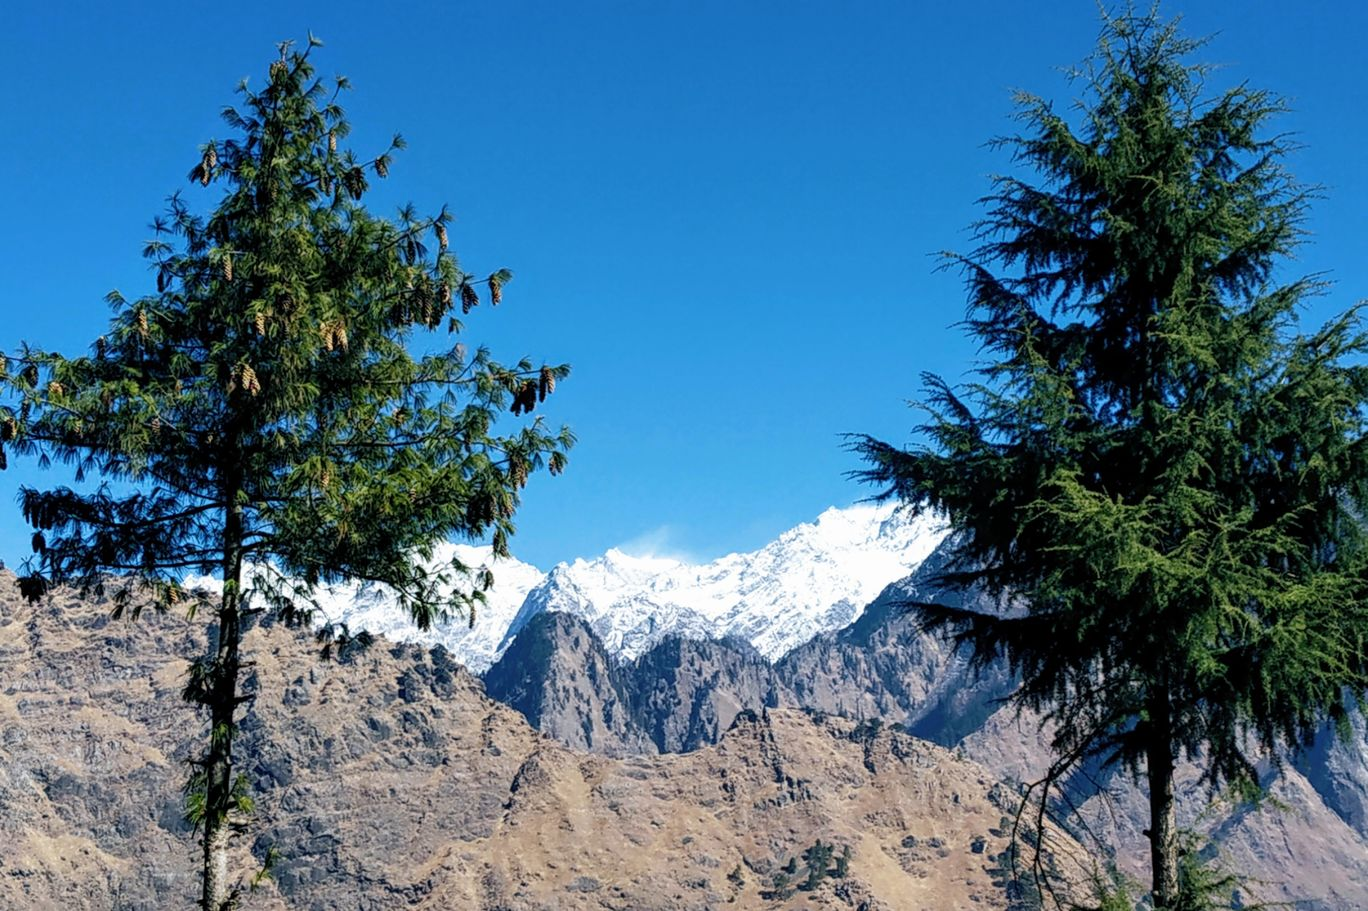 Photo of Auli By Sparsh Goyal